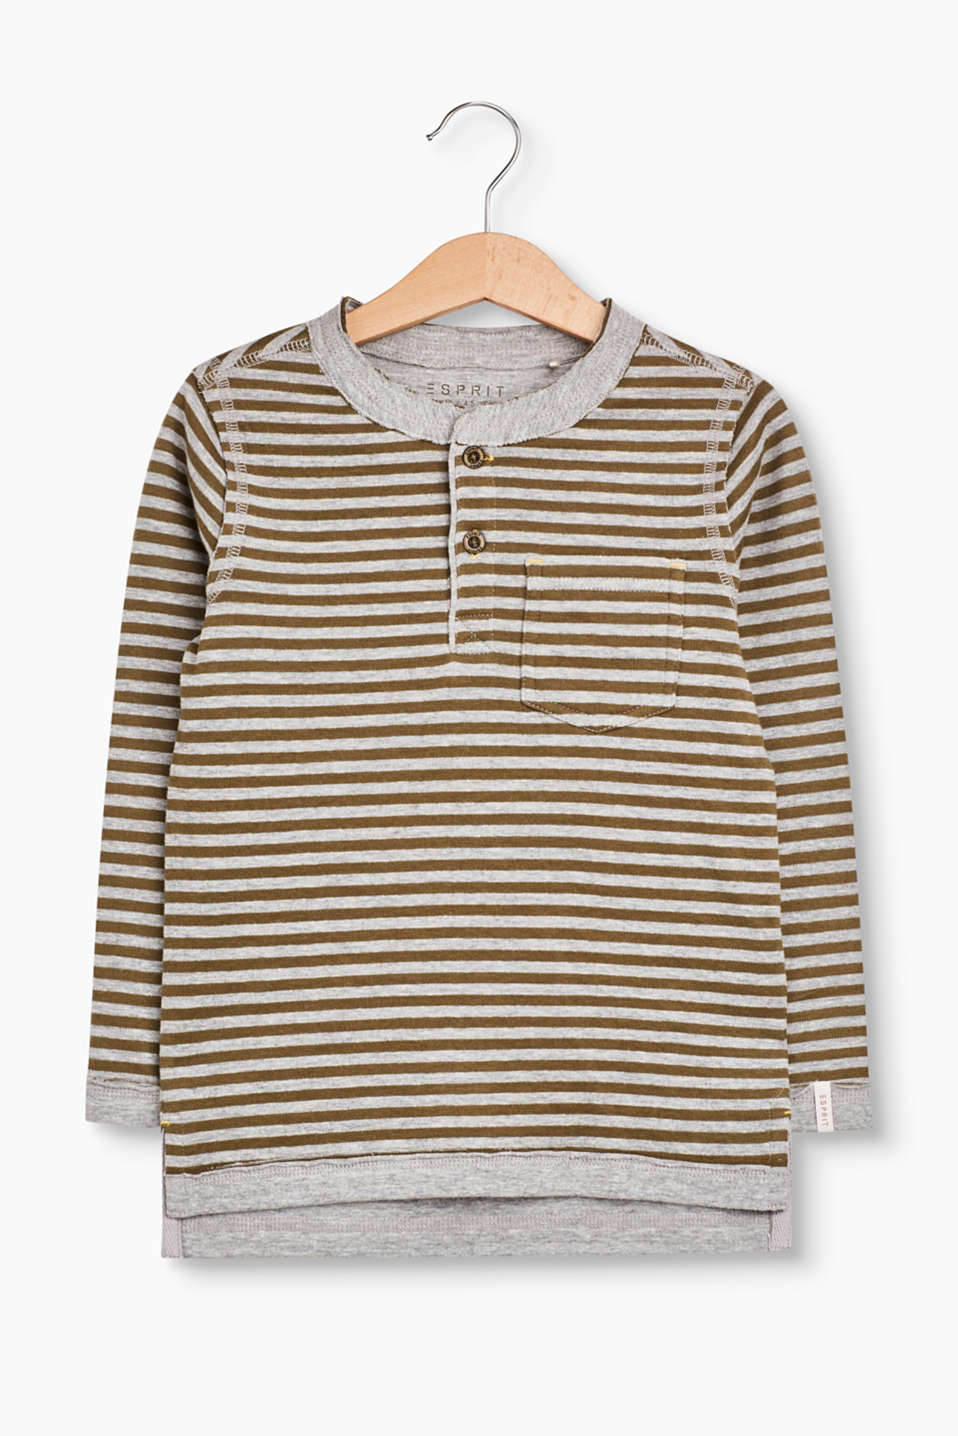 It is easy to simply put something on and look cool with this striped long sleeve top in double-layered blended cotton!